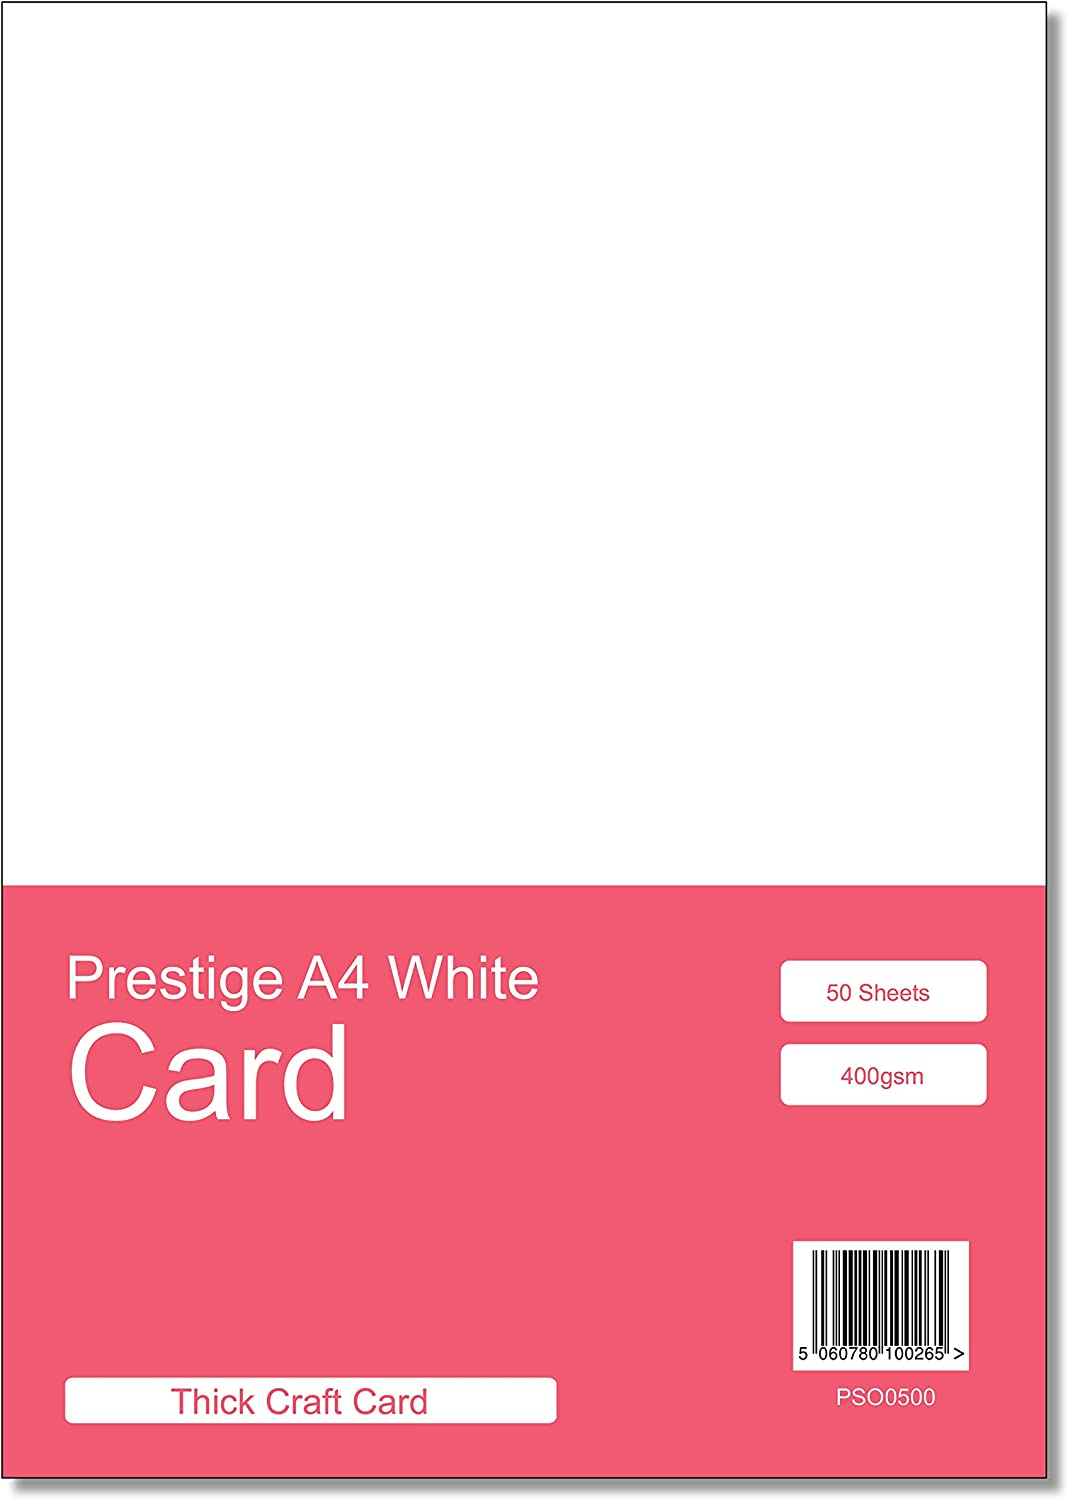 Paper Office Paper Products gaixample.org Prestige 400gsm Craft ...